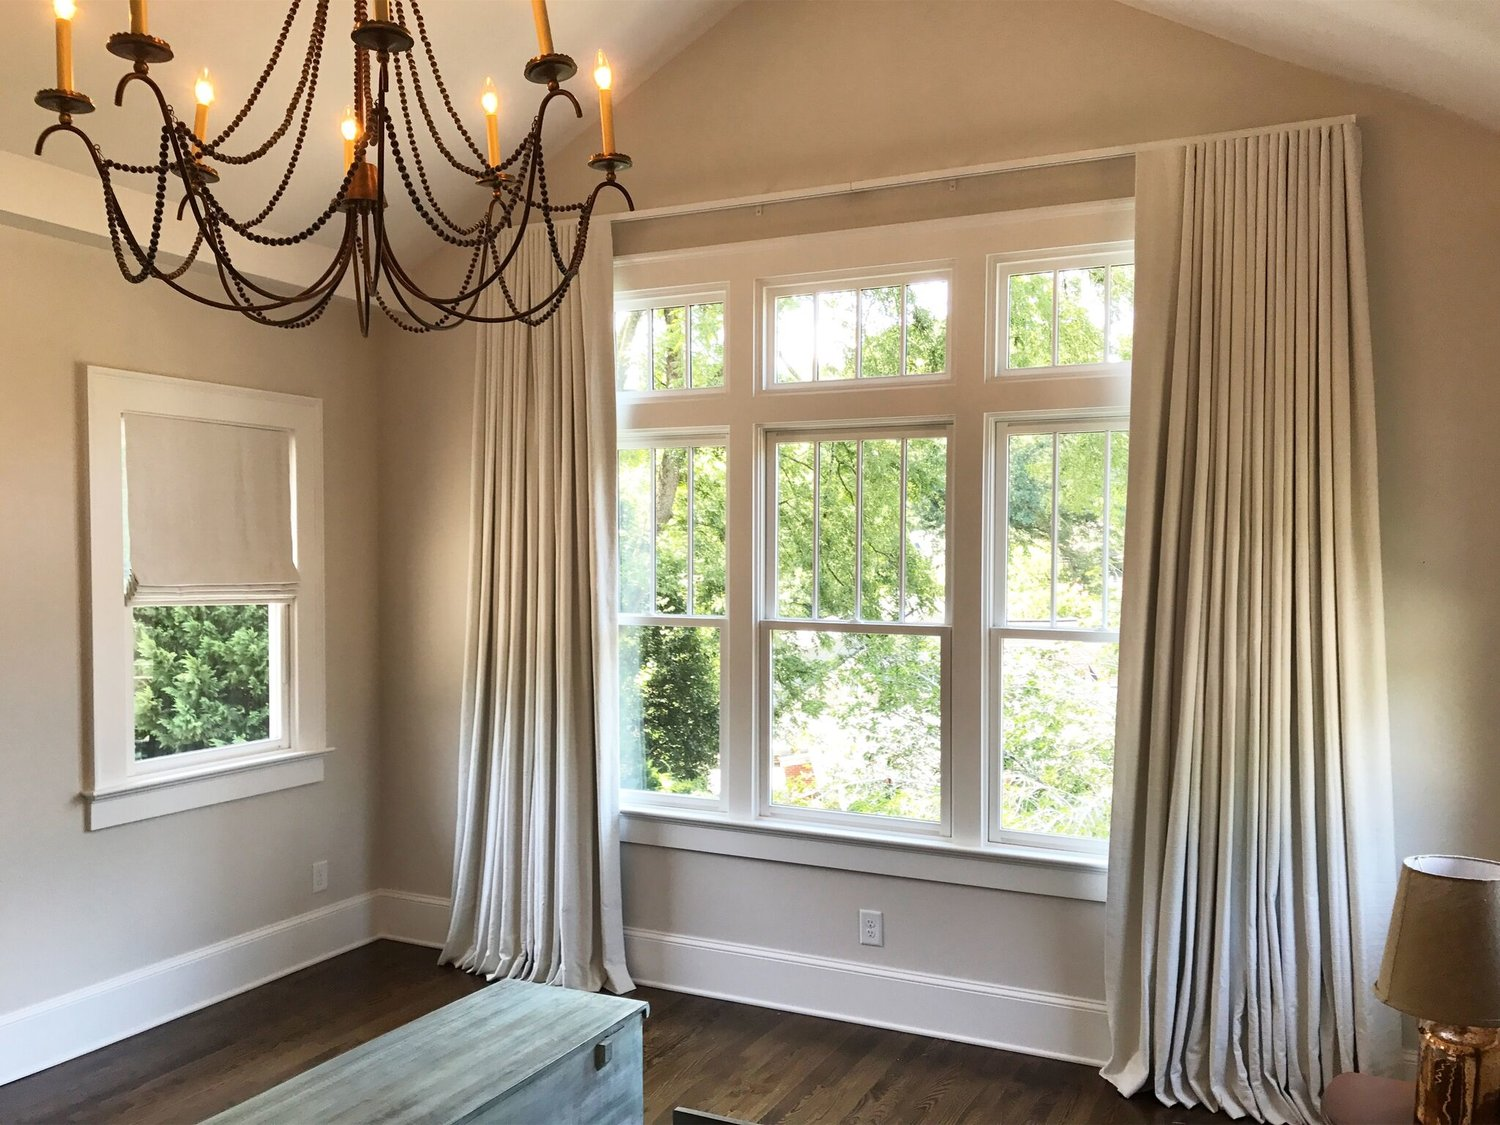 douglas window unlimited graphite provenance in treatments mindanao blinds shades woven woods wooden bamboo hunter